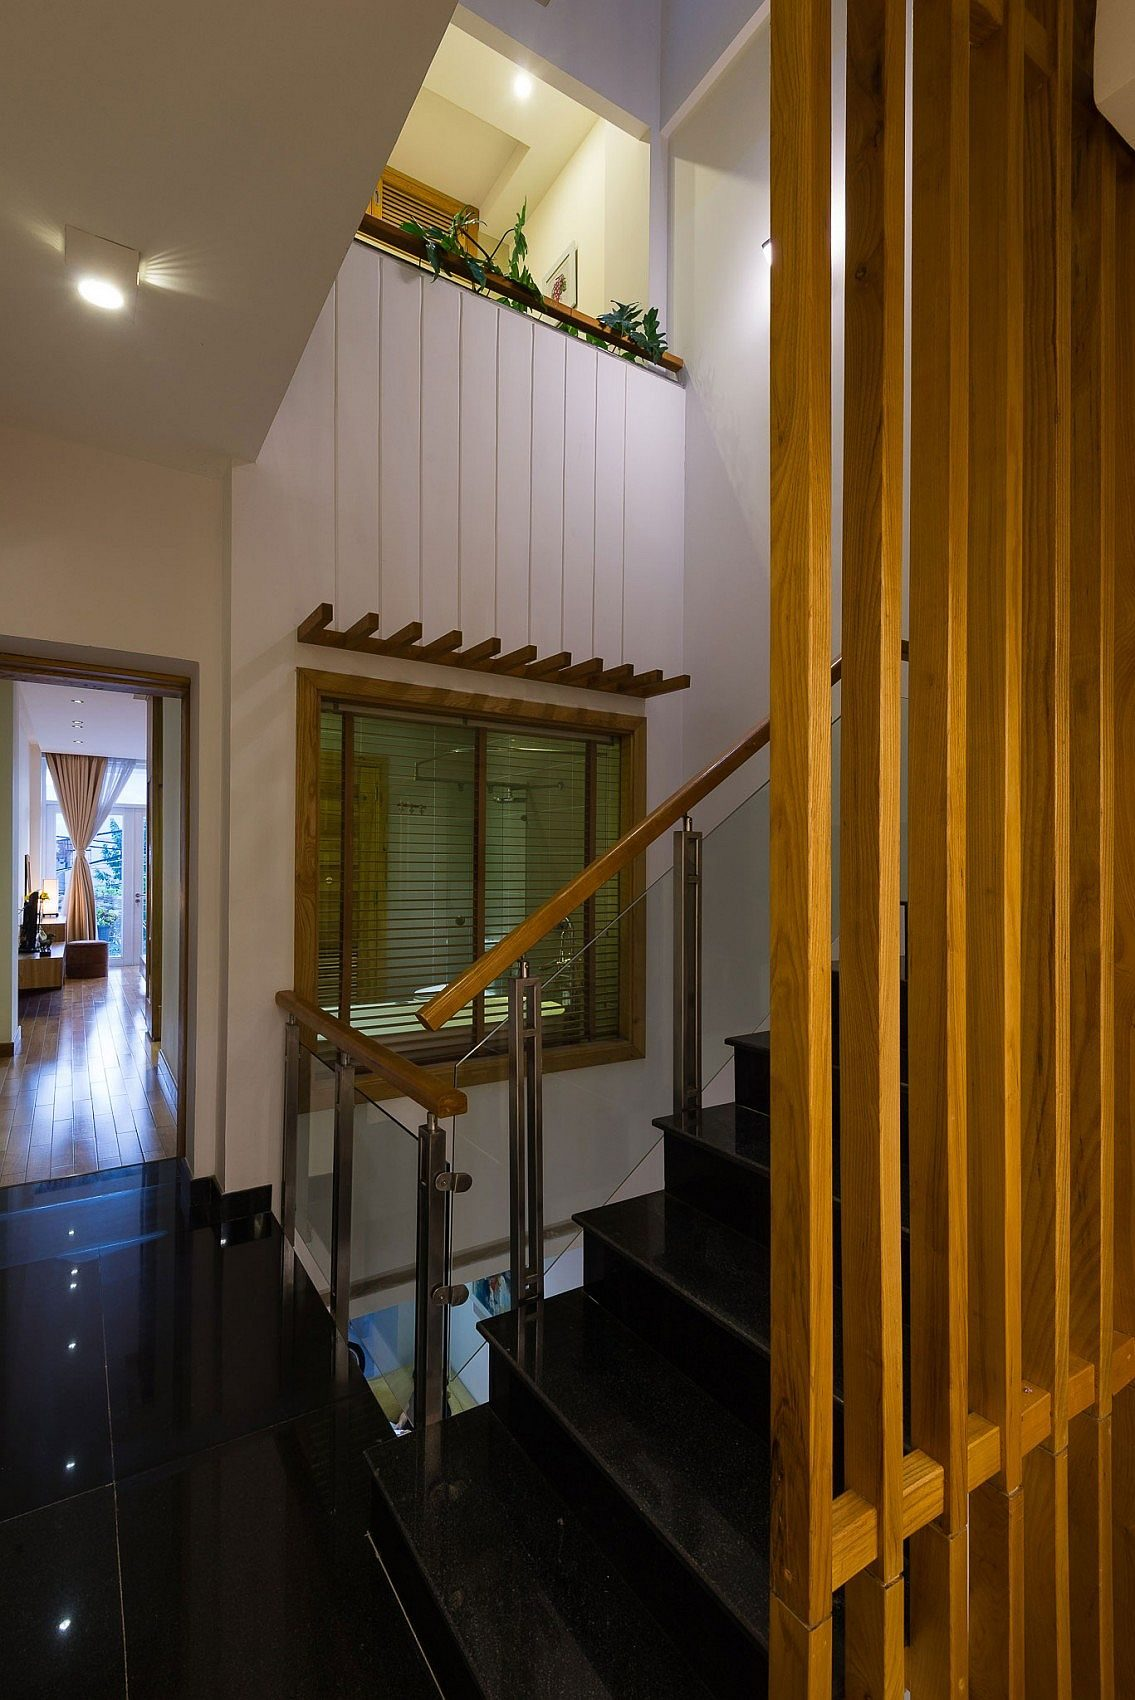 Light-well-next-to-the-brings-illuminates-the-various-levels-of-the-narrow-home